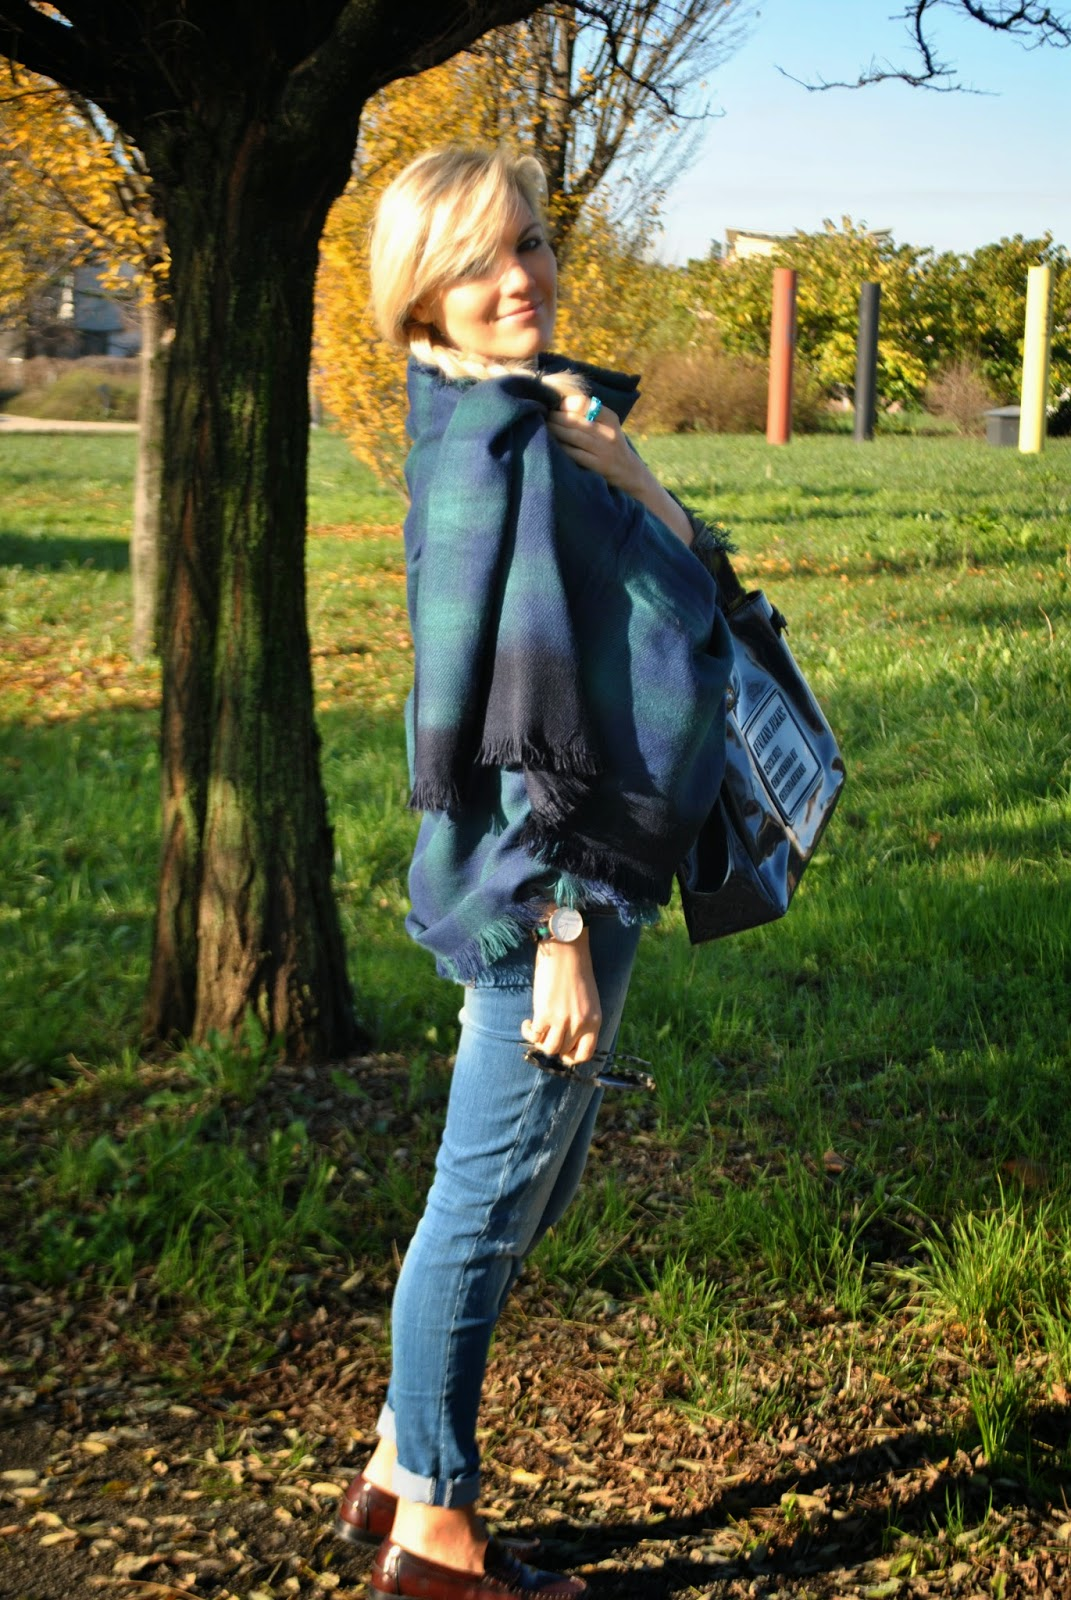 outfit invernale casual outfit mantella outfit maxi sciarpa come indossare la sciarpa sciarpa stampa plaid outfit total jeans mocassini borsa blu armani jeans occhiali da sole carrera anello blu luca barra orologio daniel wellington orologio preppy outfit stile preppy jeans sebiro acconciatura treccia laterale how to wear cape cape outfit outfit dicembre 2014 december outfits fashion blogger italiane fashion bloggers italy how to wear plaid scarf winter outfits mariafelicia magno fashion blogger colorblock by felym fashion blog italiani blonde girls blondie blonde hair ragazze capelli biondi